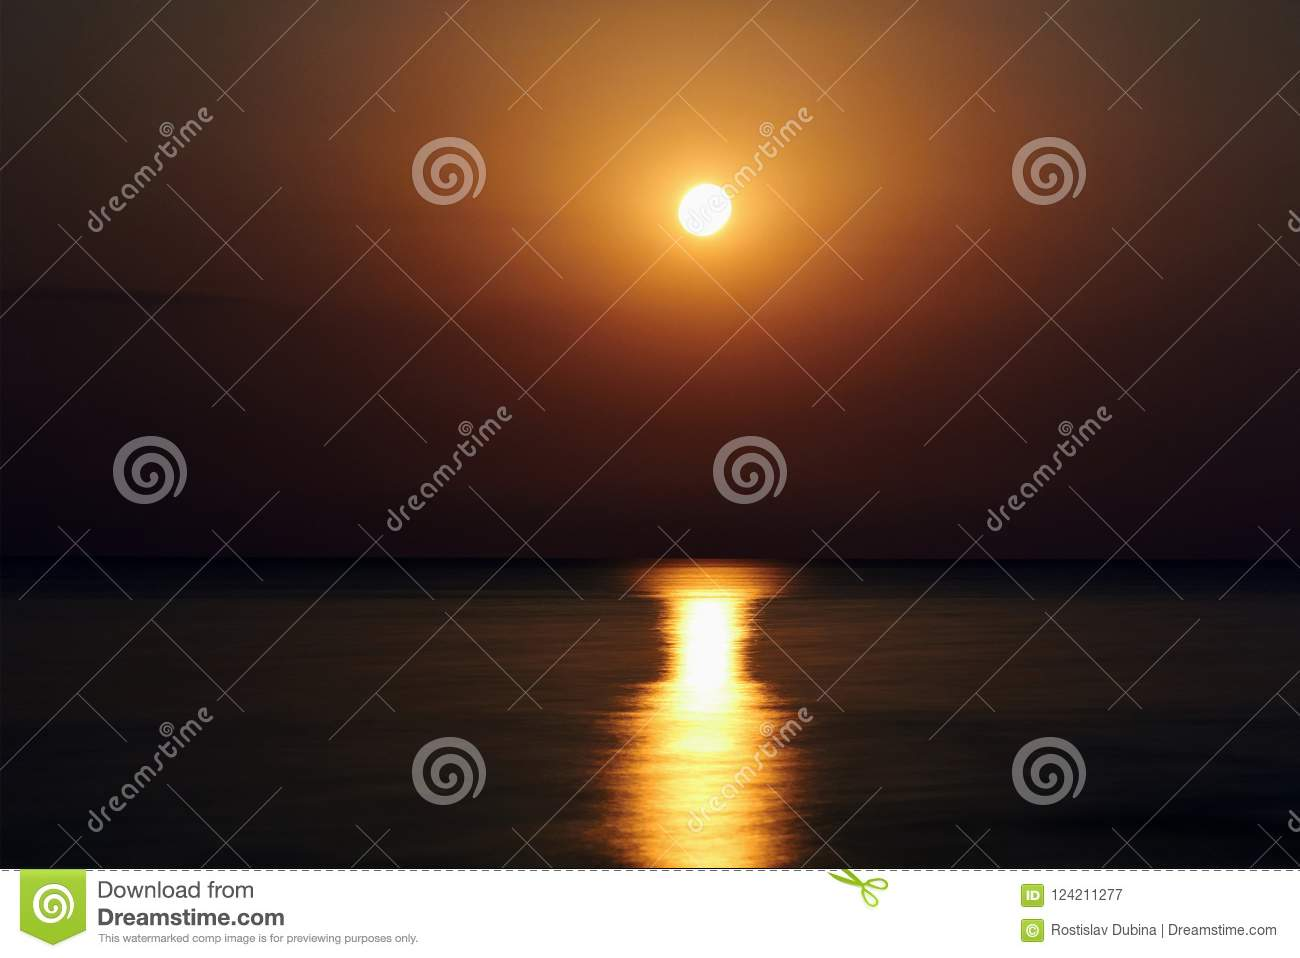 The super moon on the beach. The moon track is reflected in the water. The night moon came up over the water. Full moon on the bea